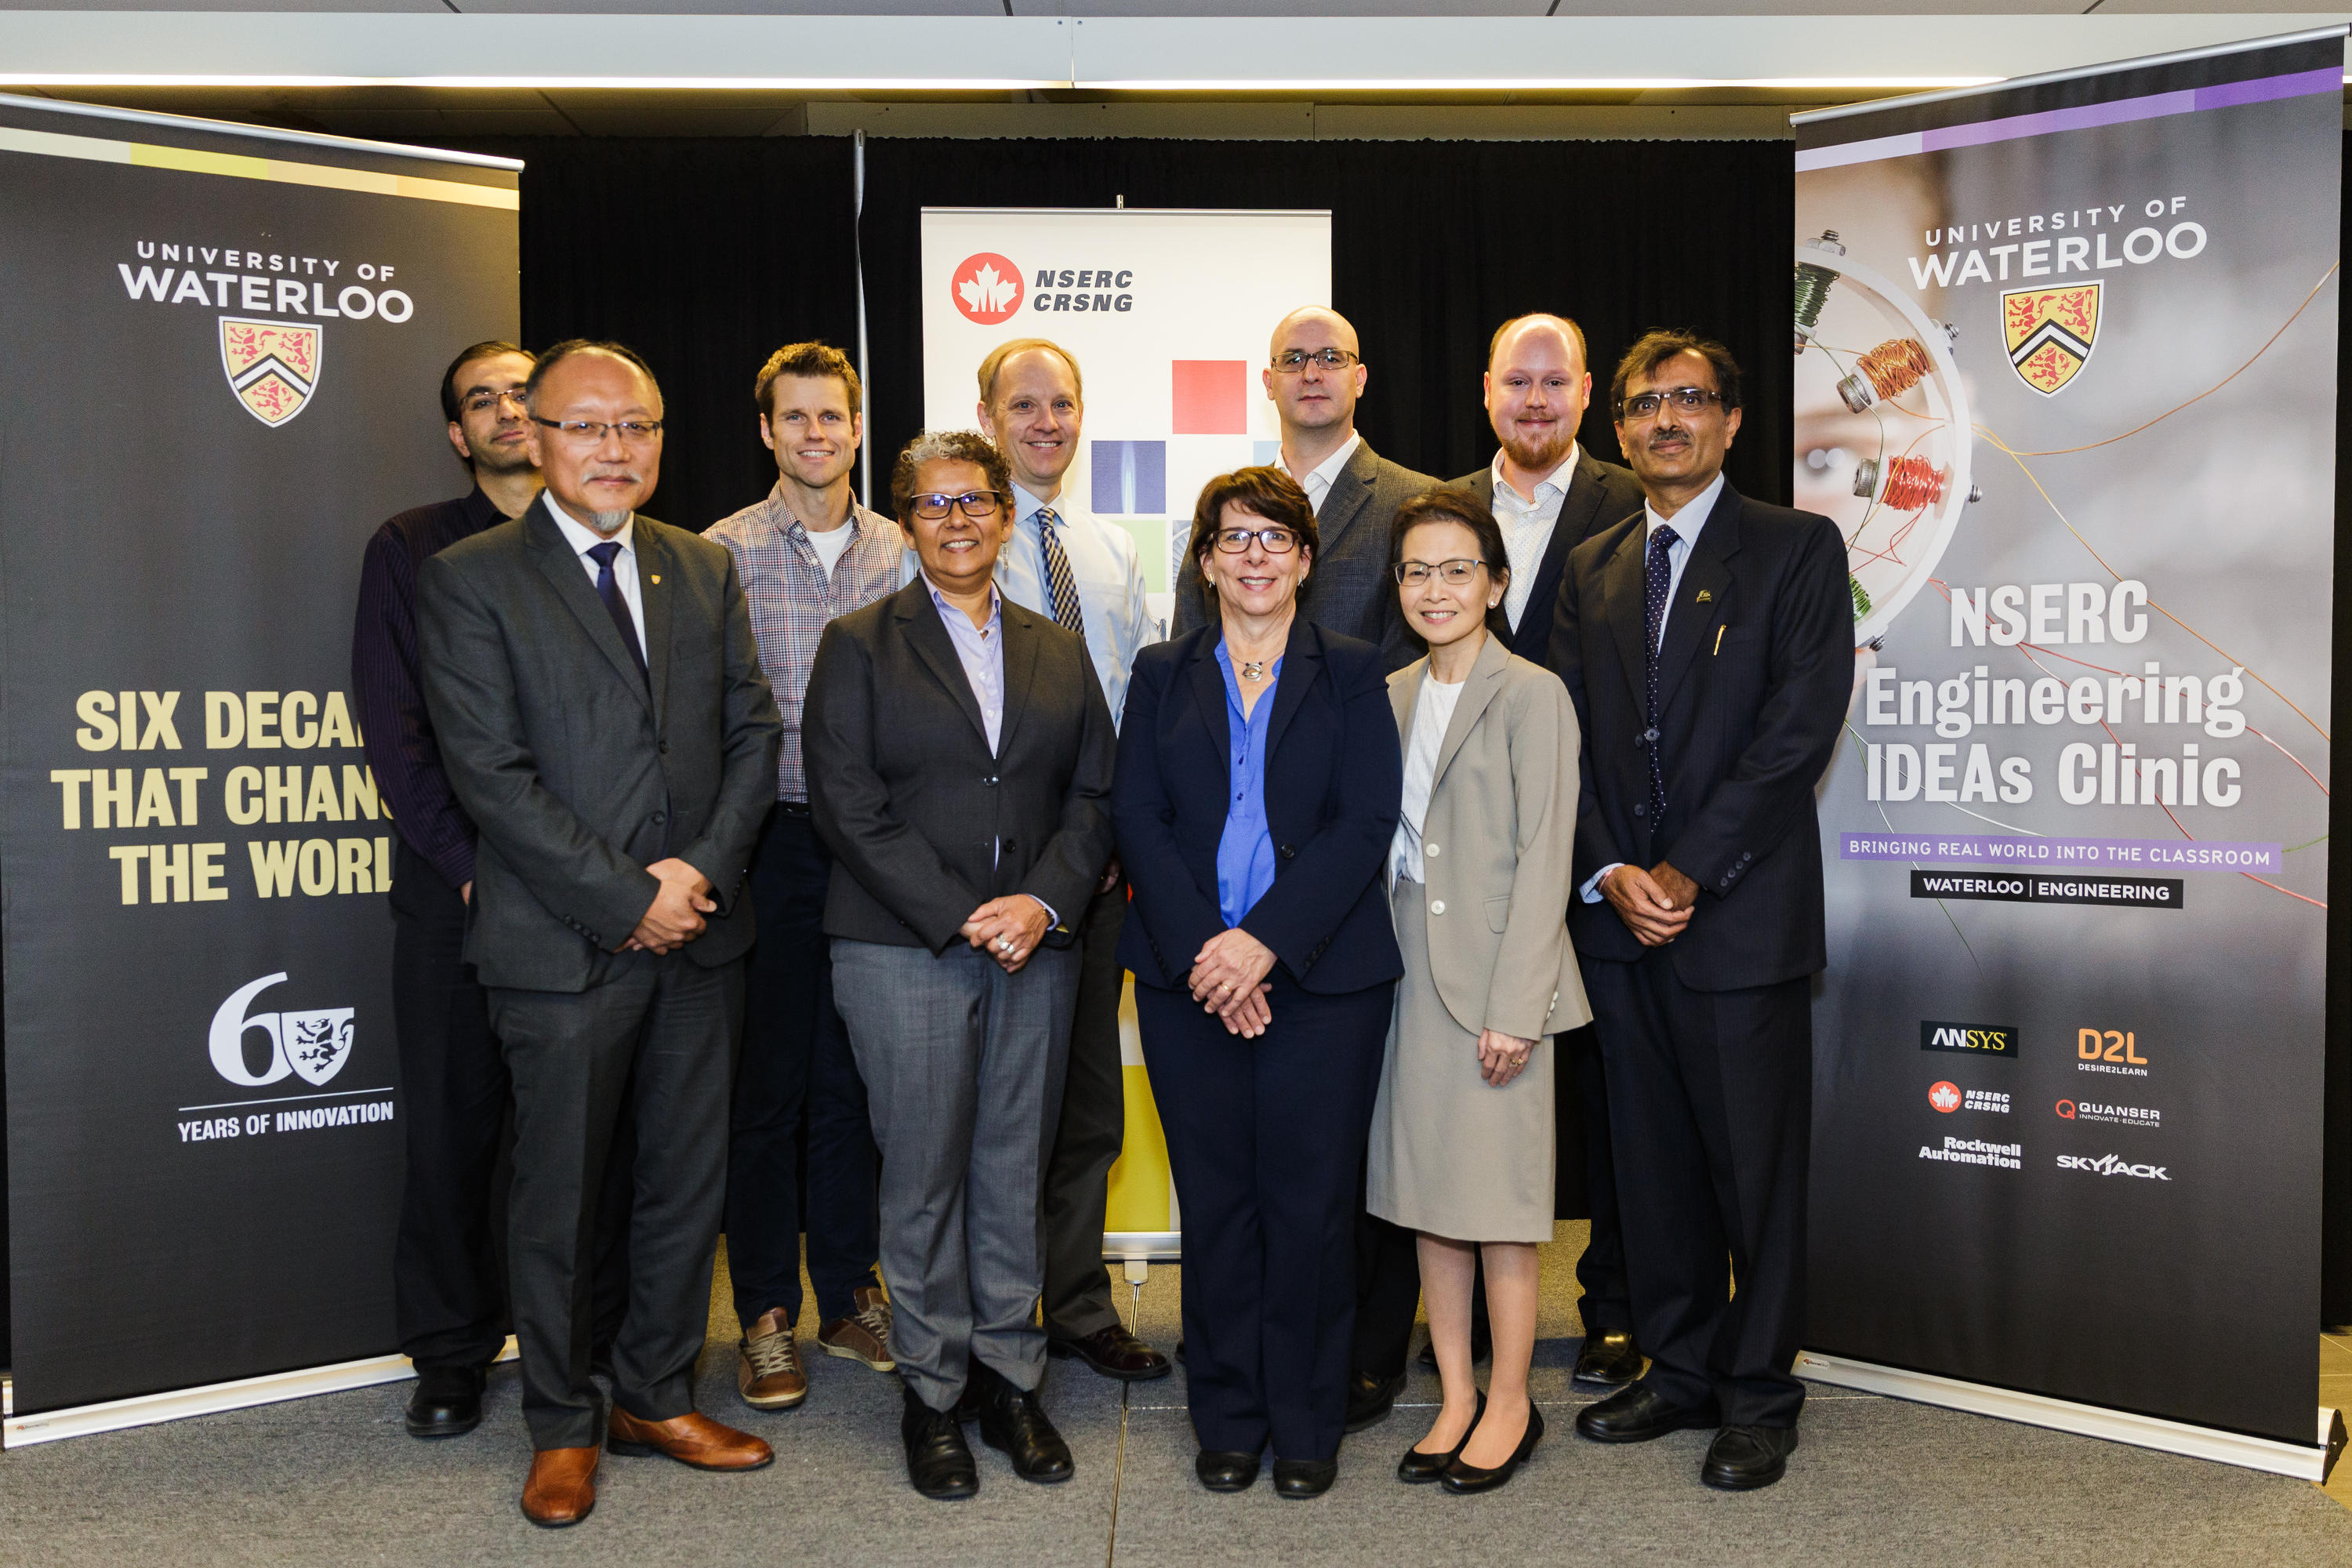 Photo of the new NSERC Chair with all the Industry sponsers